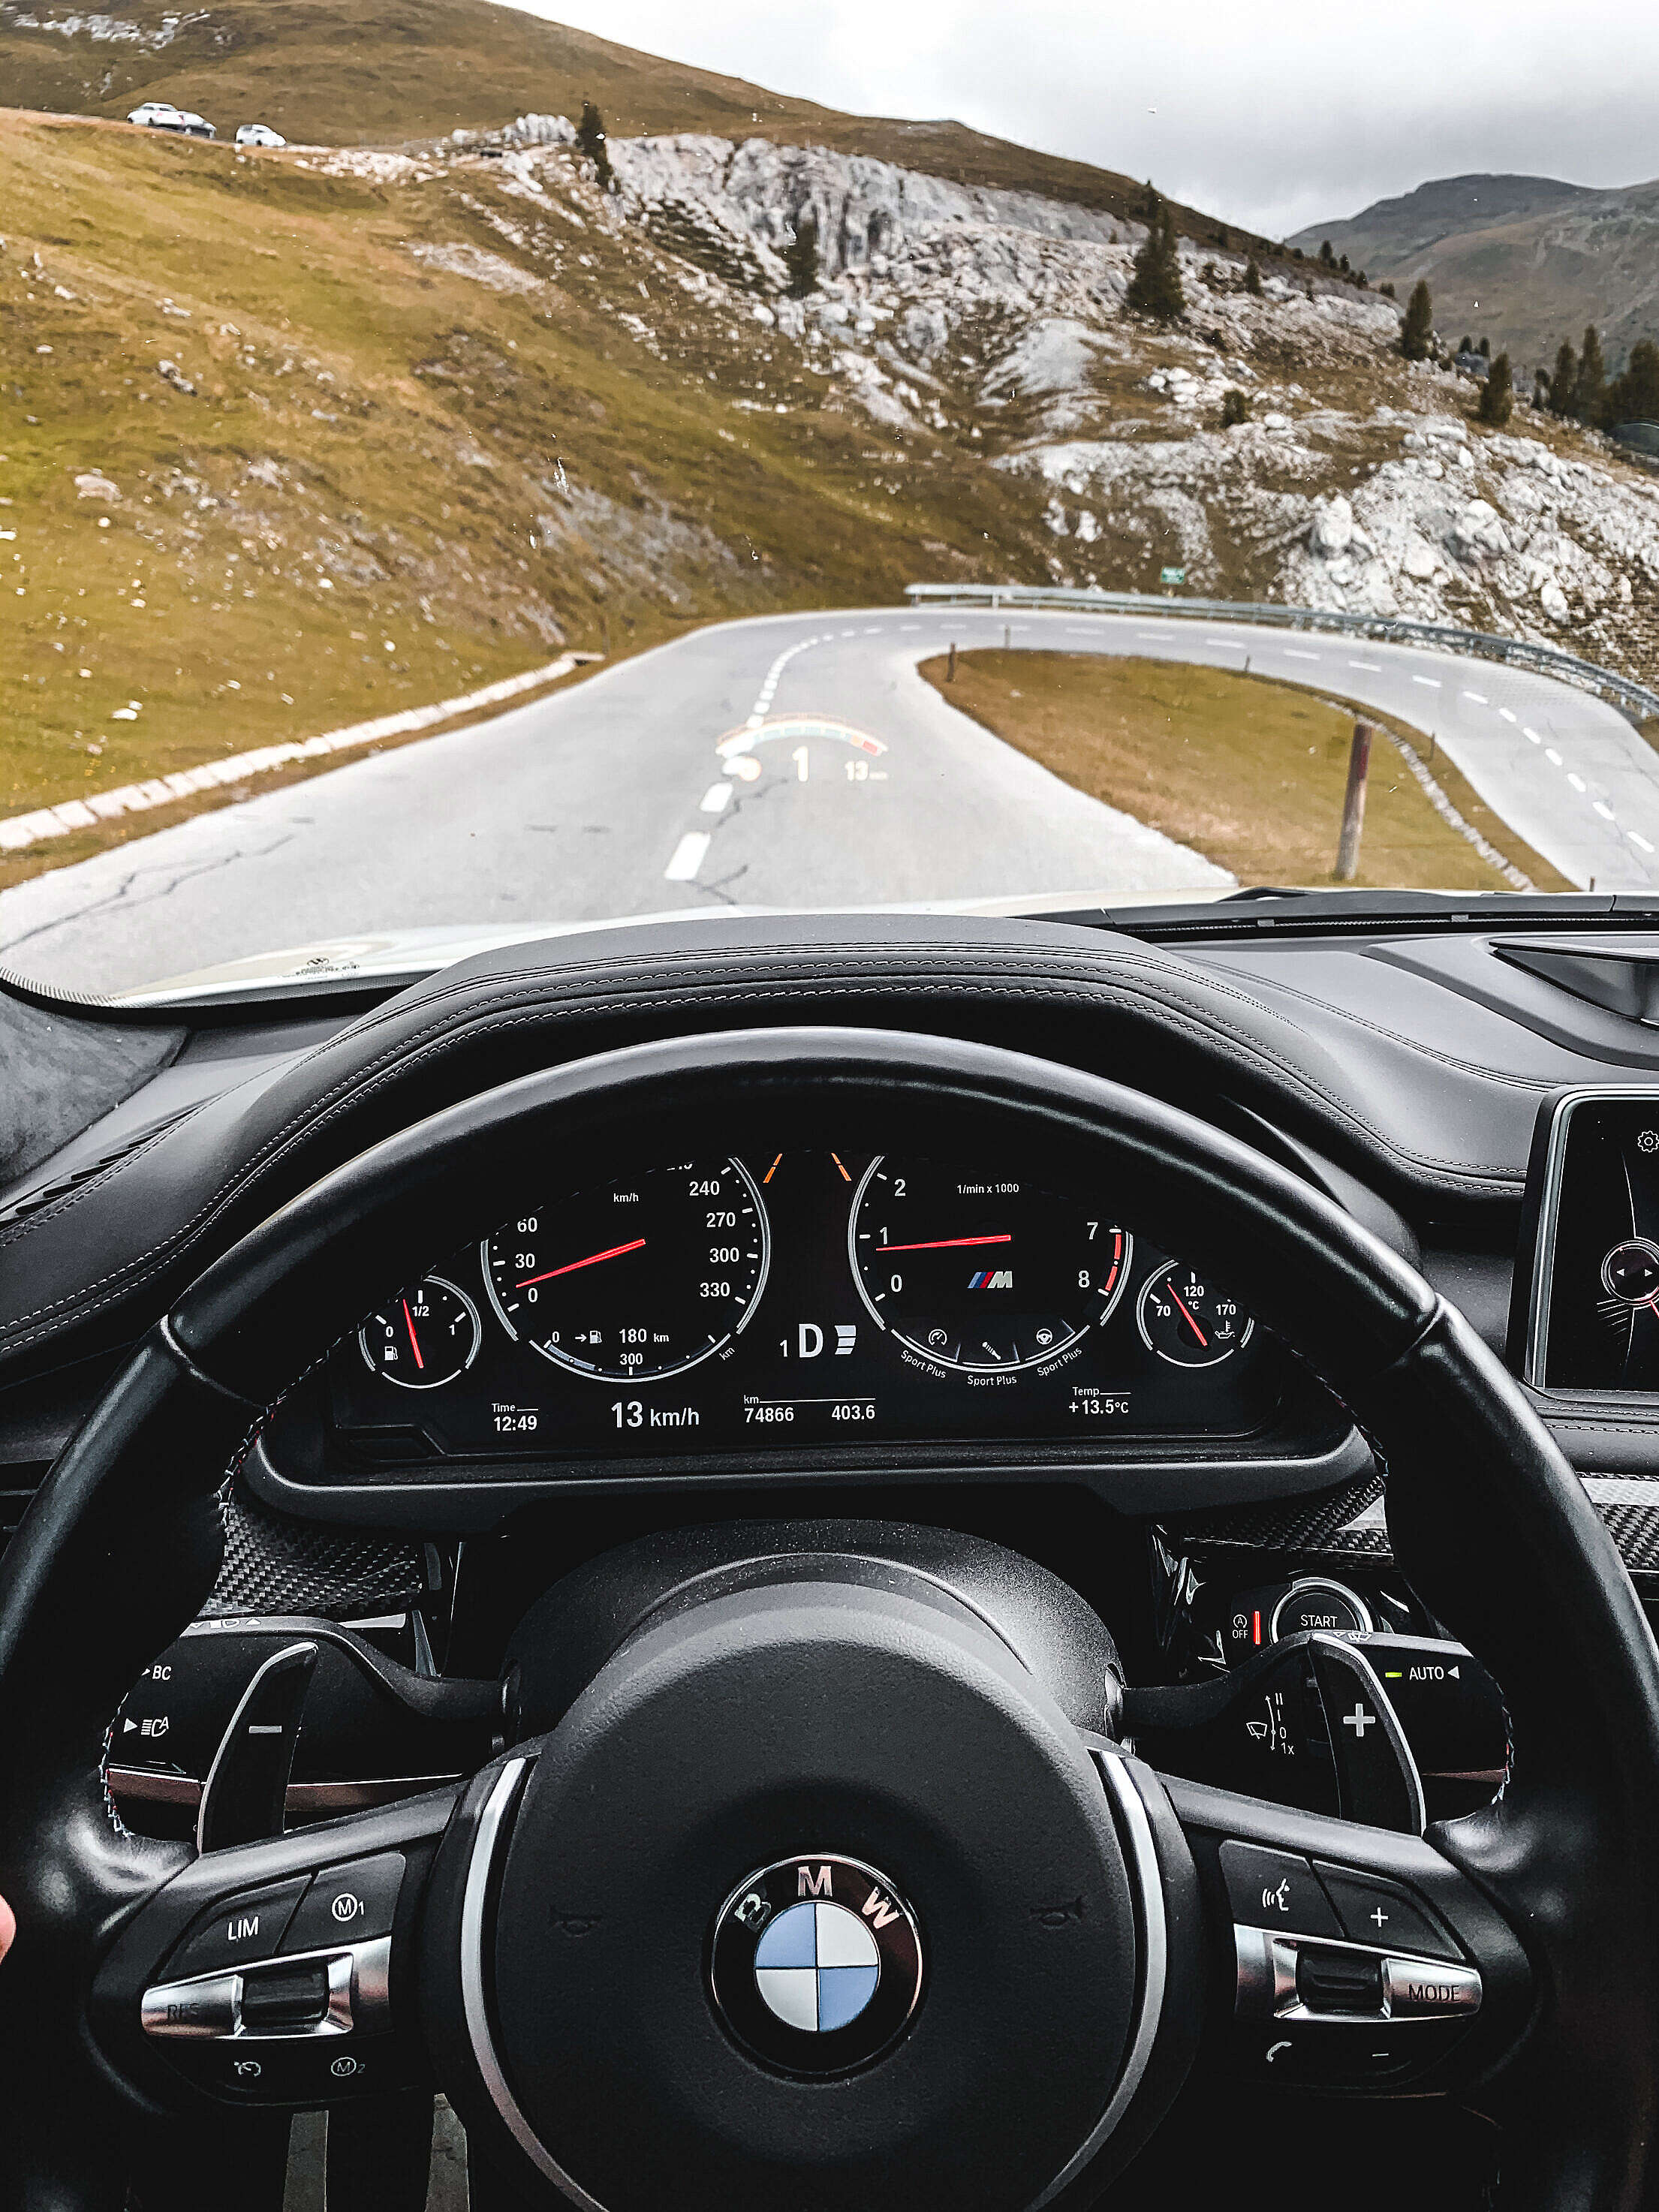 View from a Sport Car Cockpit on the Beautiful Nockalm Road Free Stock Photo